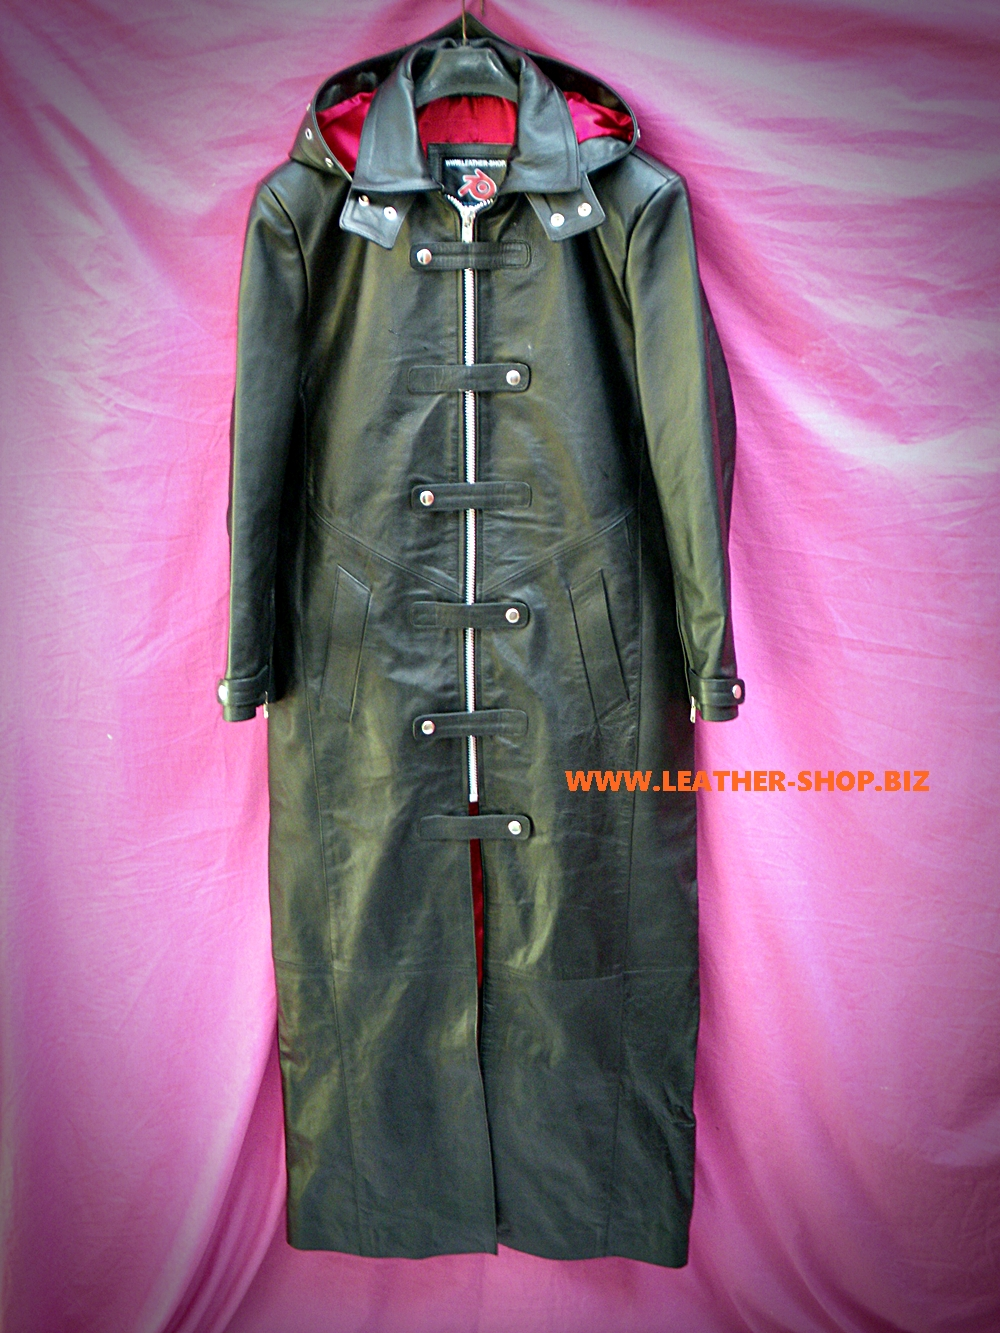 men-s-leather-trench-coat-custom-made-steampunk-style-with-hood-mtc613-www.leather-shop.biz-front-with-hood-image.jpg